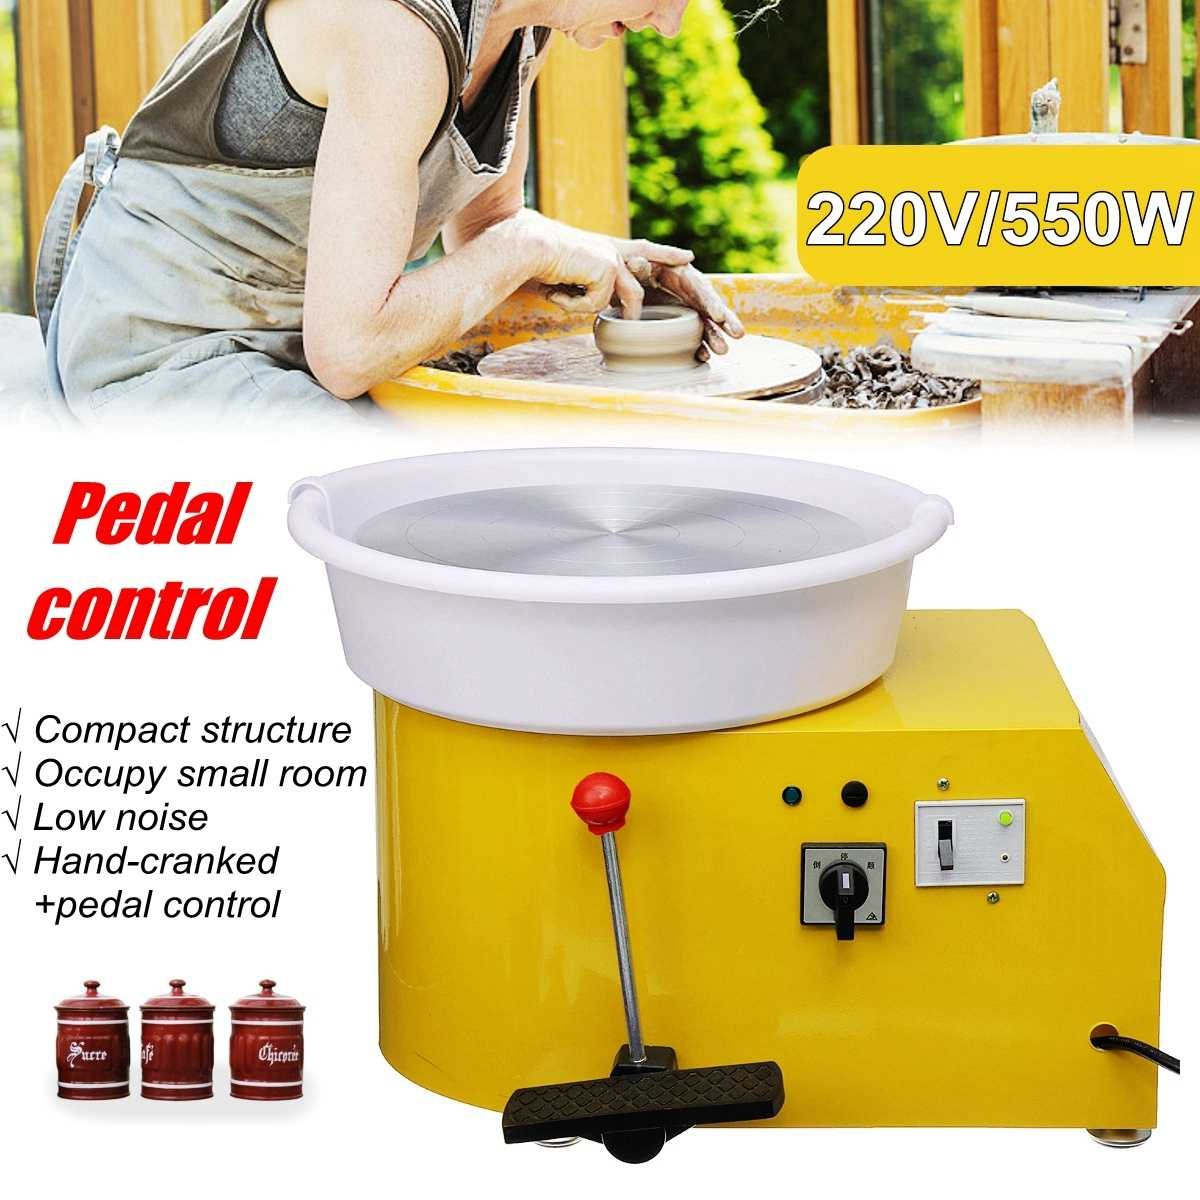 Pottery Wheel Machine 32cm AC 220V 550W Flexible Manual pedal Ceramic Work Ceramics Clay Art With Mobile Smooth Low Noise